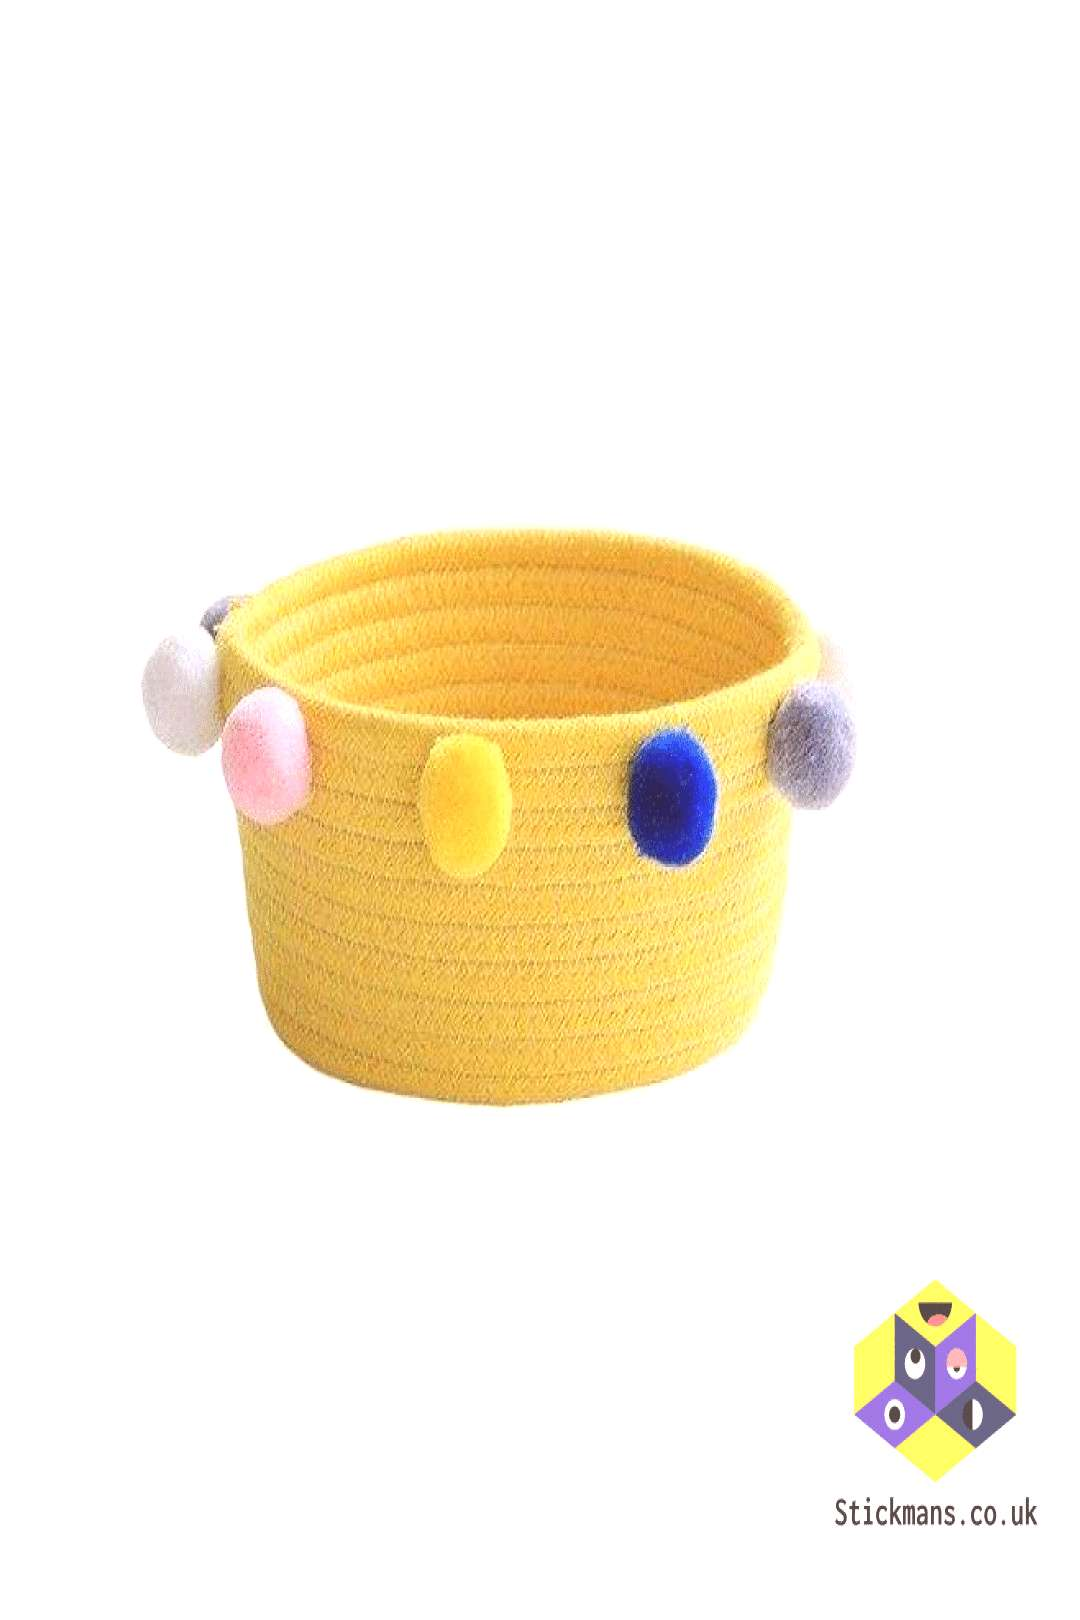 Nordic Woven Basket with Fluffy Balls Toys Storage Baskets